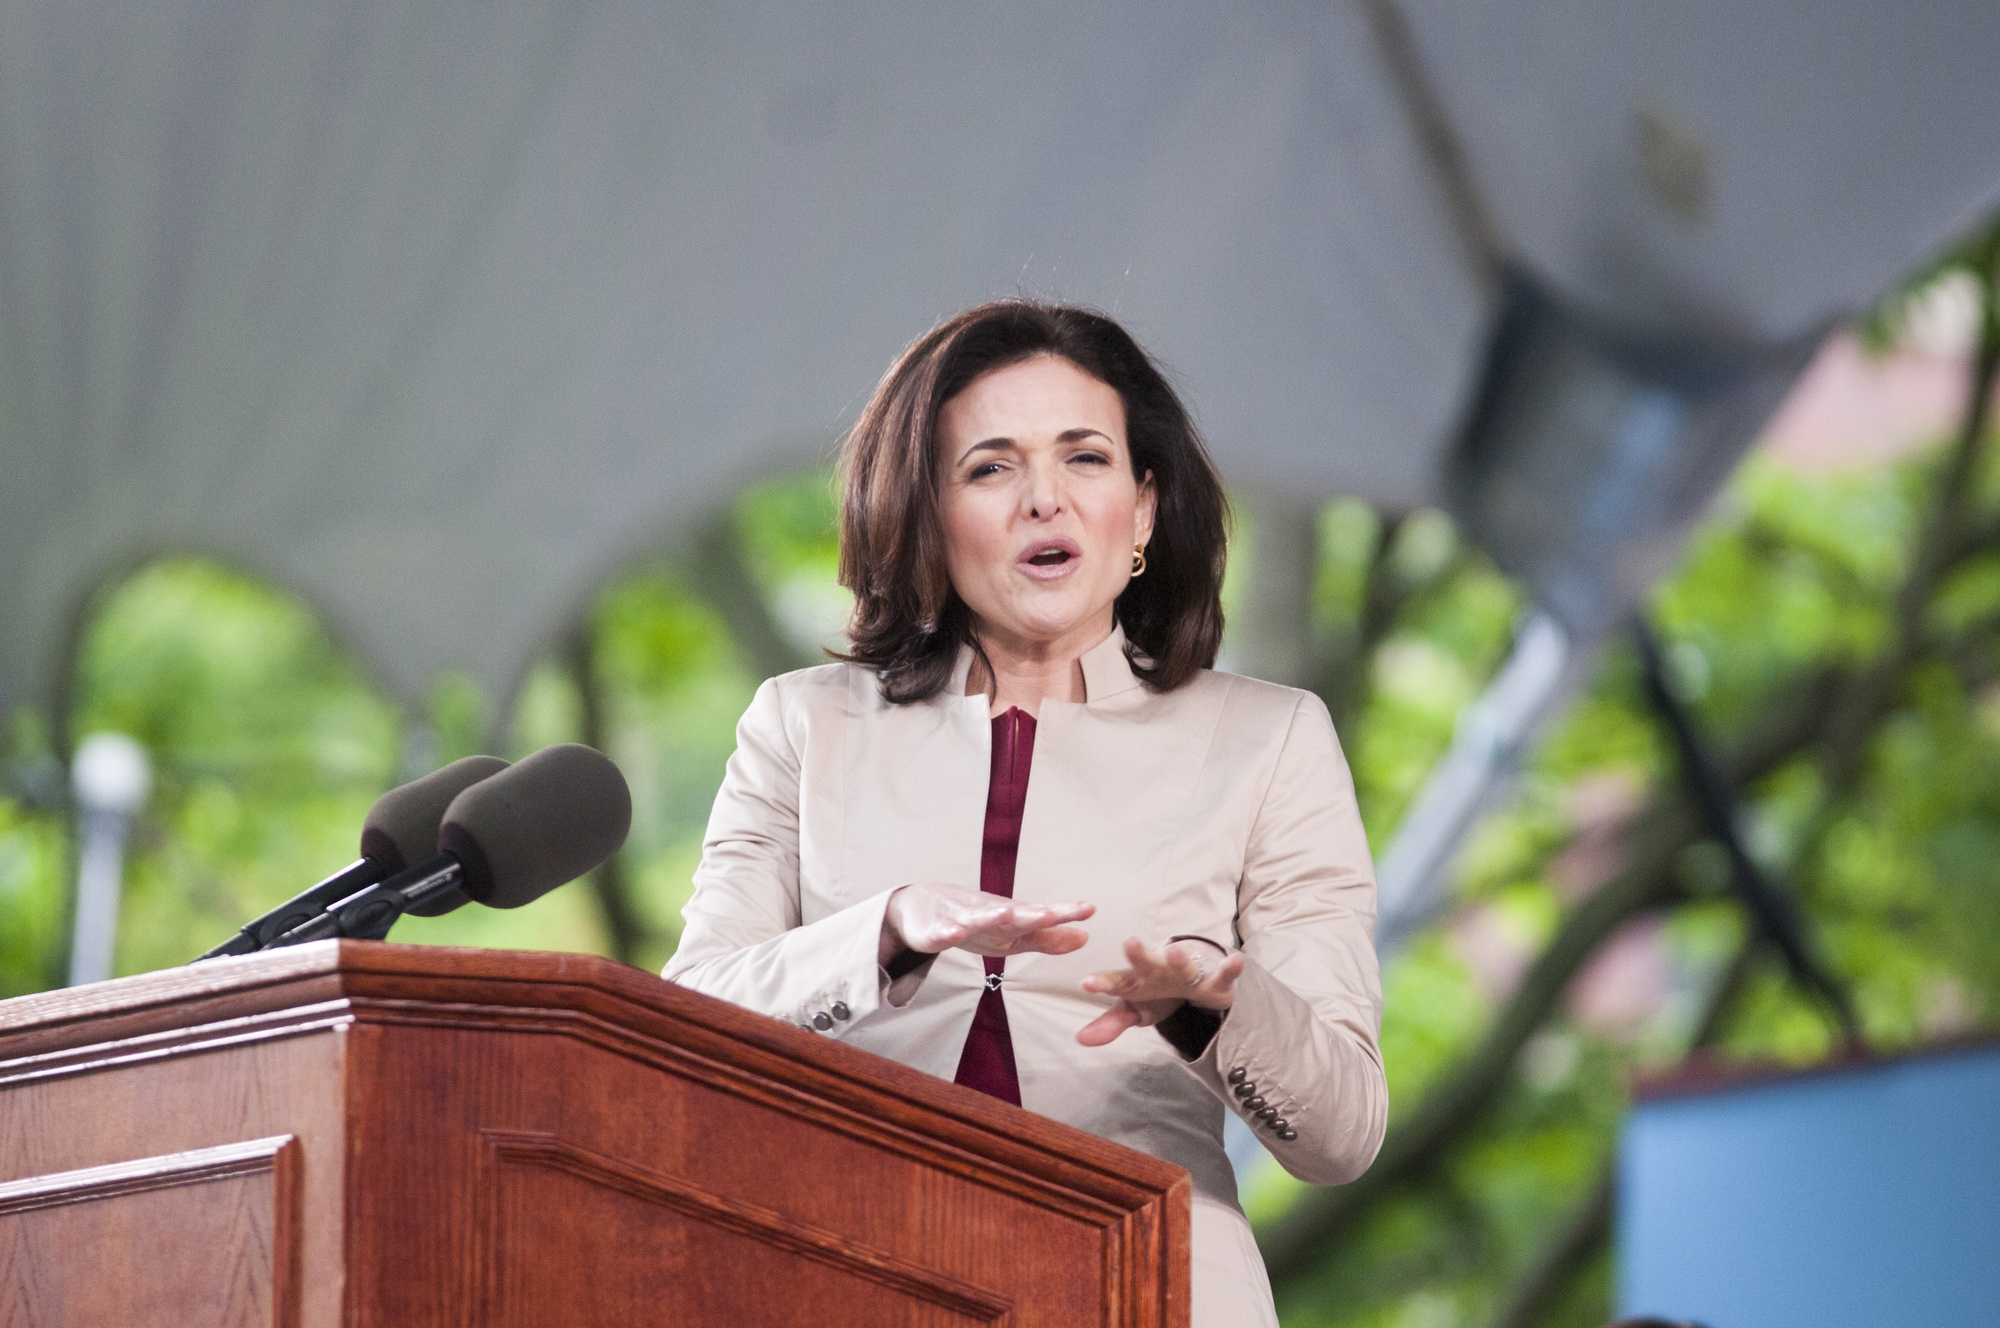 Sheryl K. Sandberg '91, the chief operating officer of Facebook, discusses her time at Harvard as an undergraduate and gender inequality in the workplace as the 2014 College Class Day speaker.